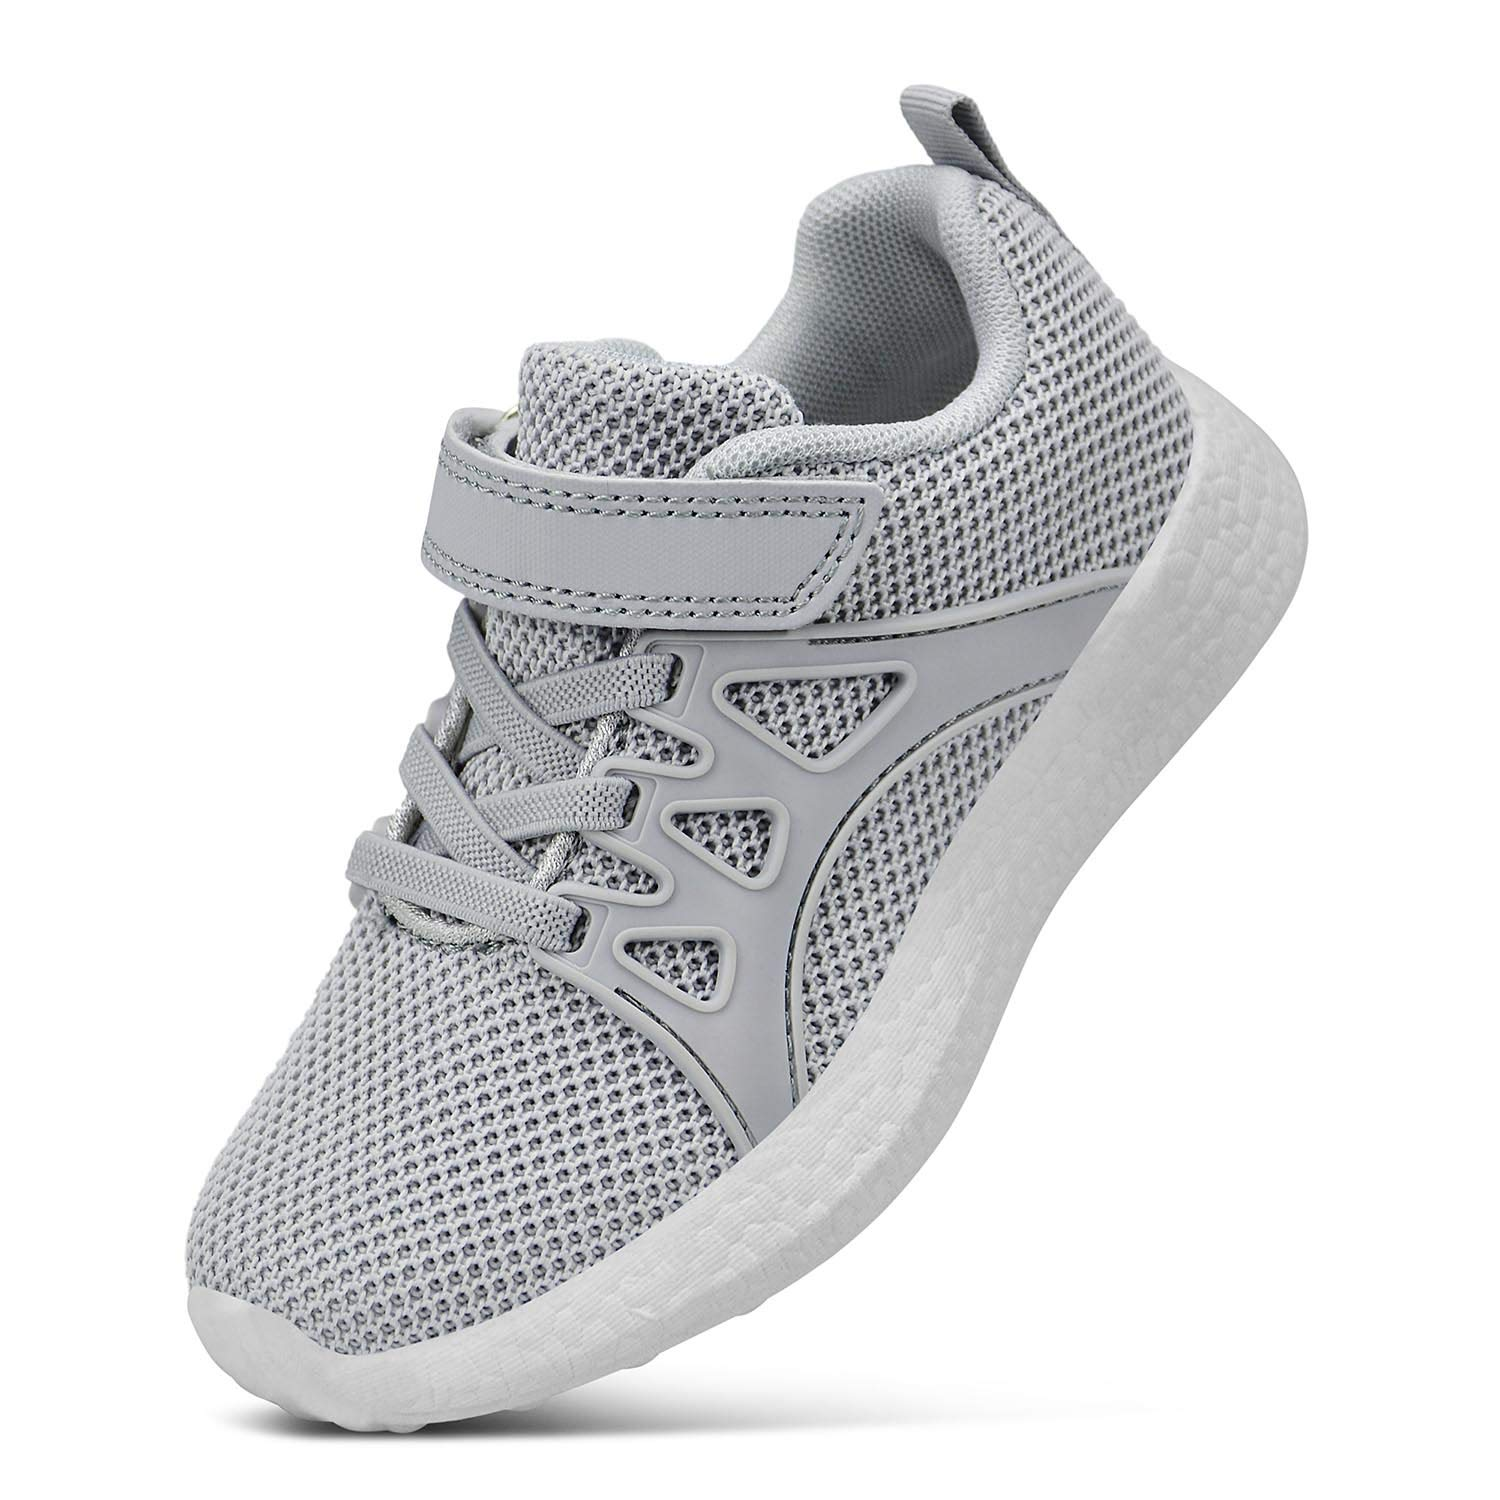 SouthBrothers Shoes Kids Knitted Boys Breathable Casual Sneakers Gray Size 1.5 M US Little Kid